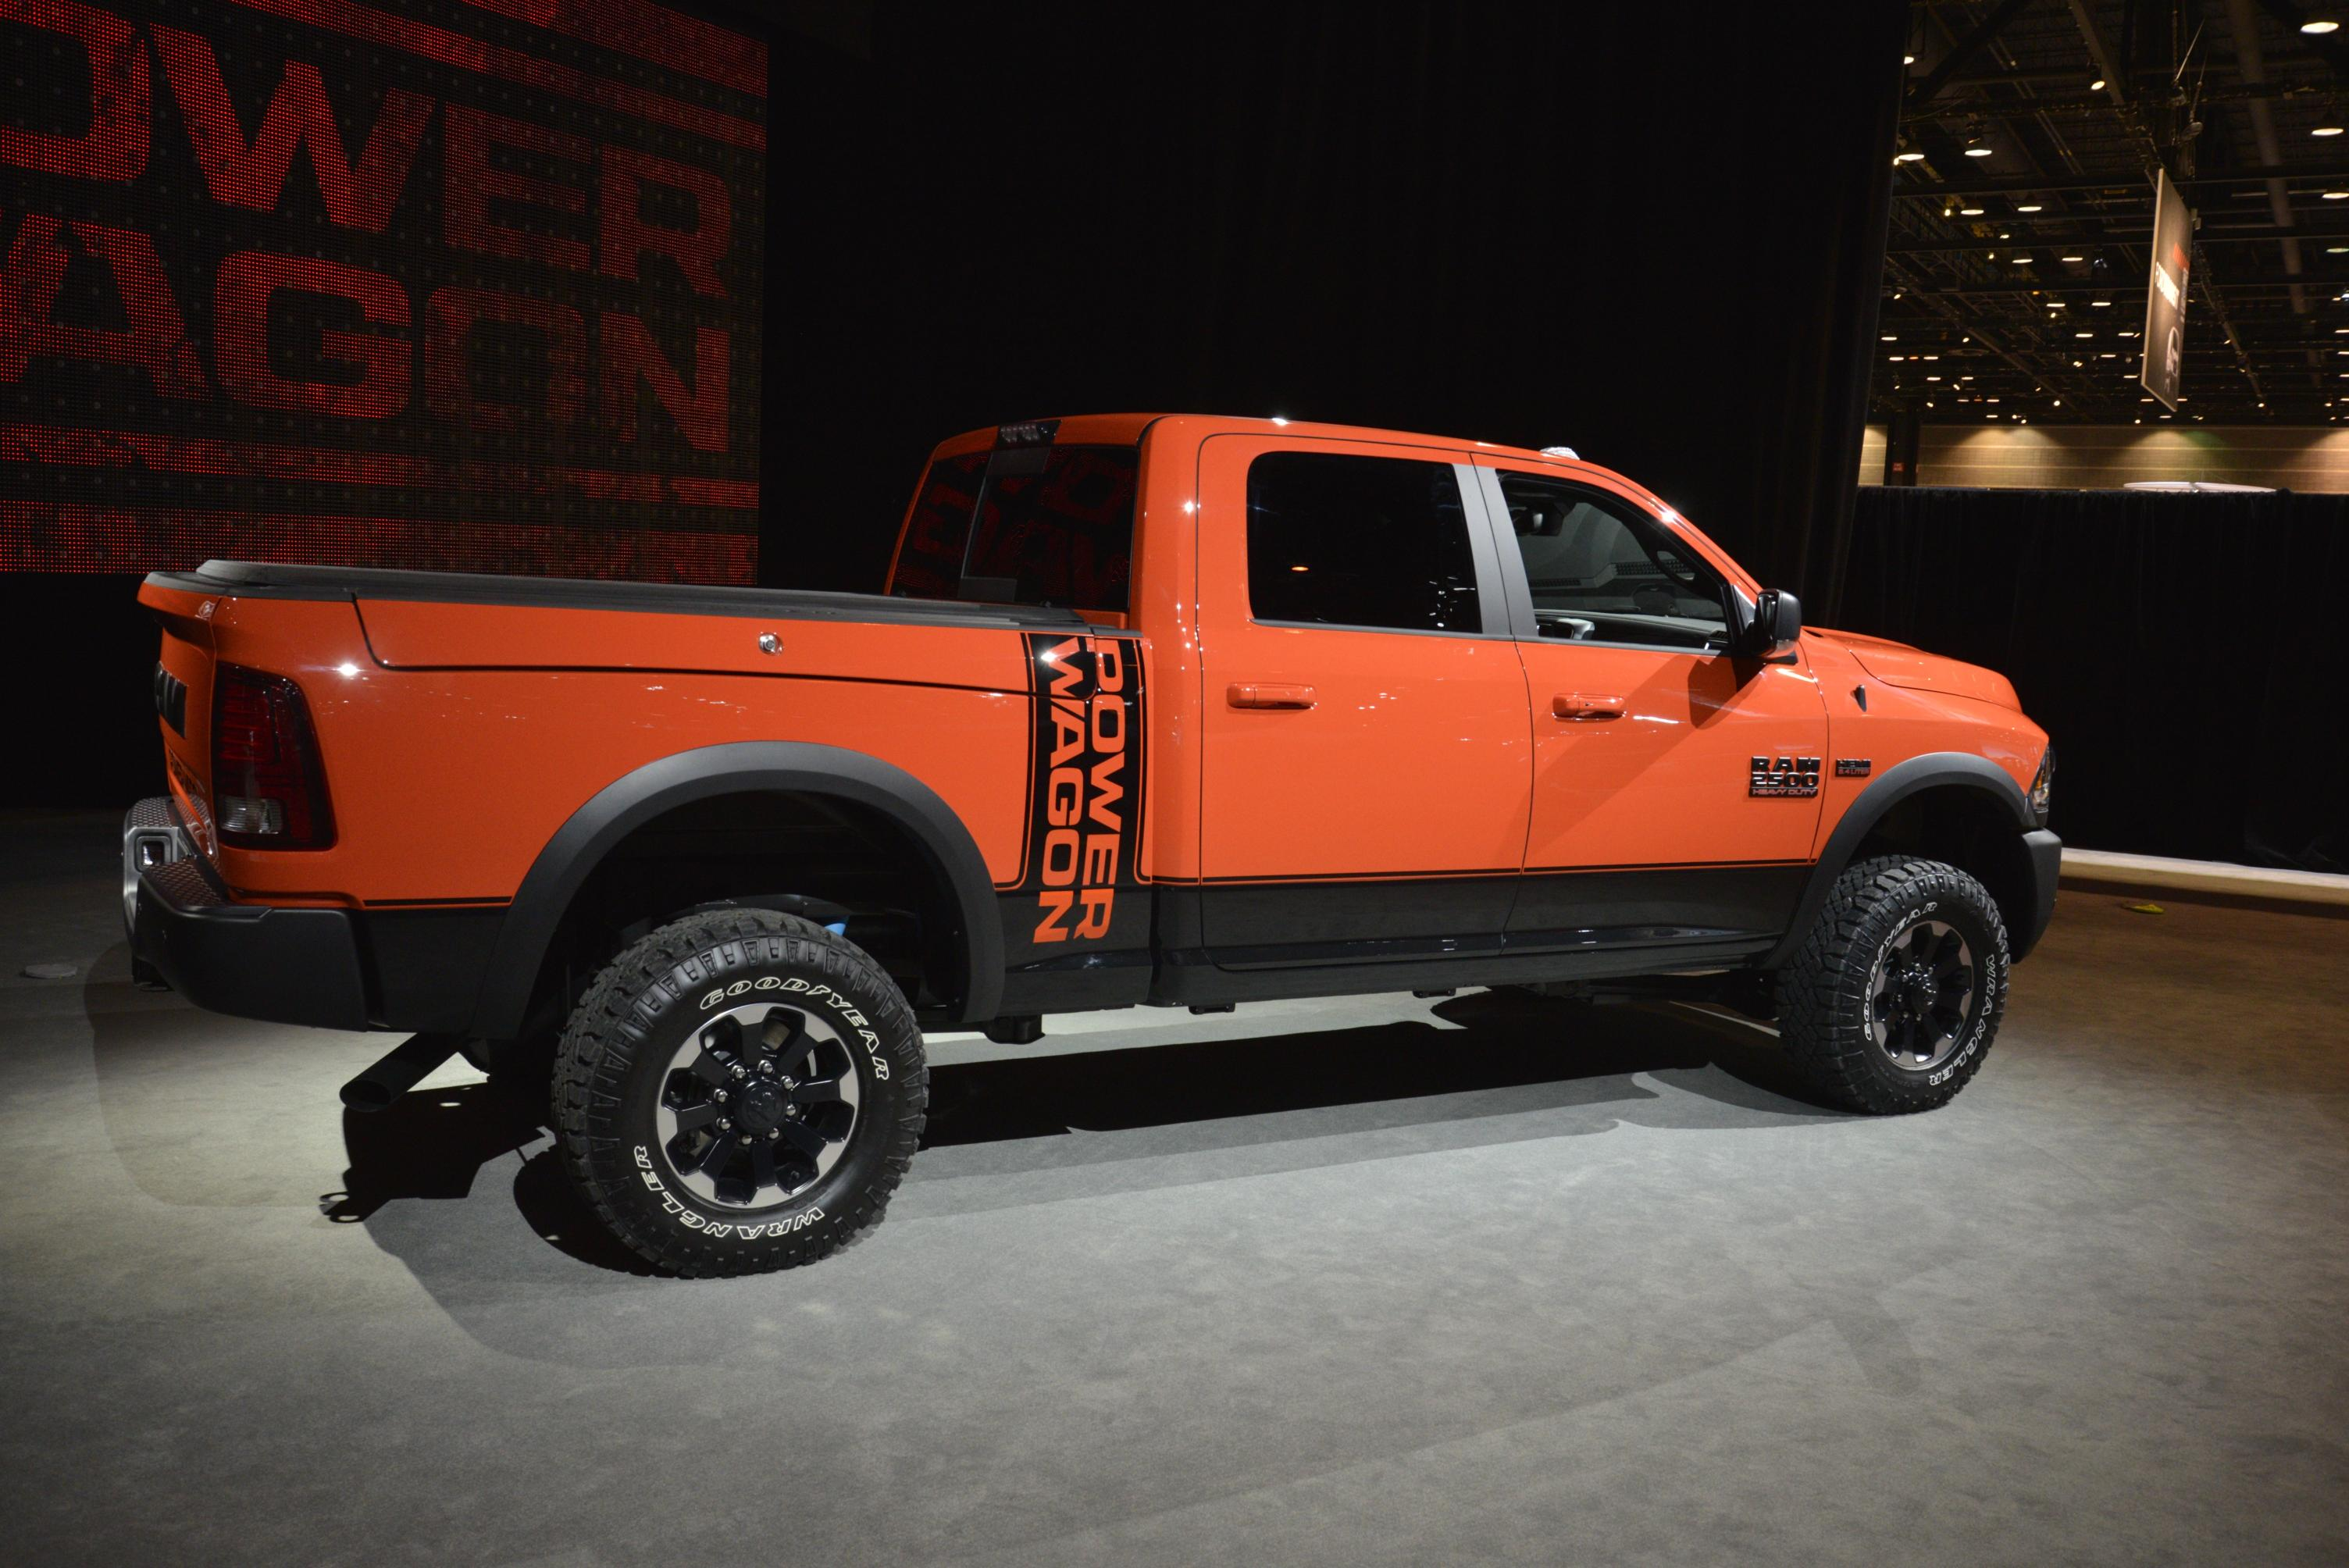 2017 Ram 2500 Power Wagon Demos Its Macho Suspension Articulation in ...